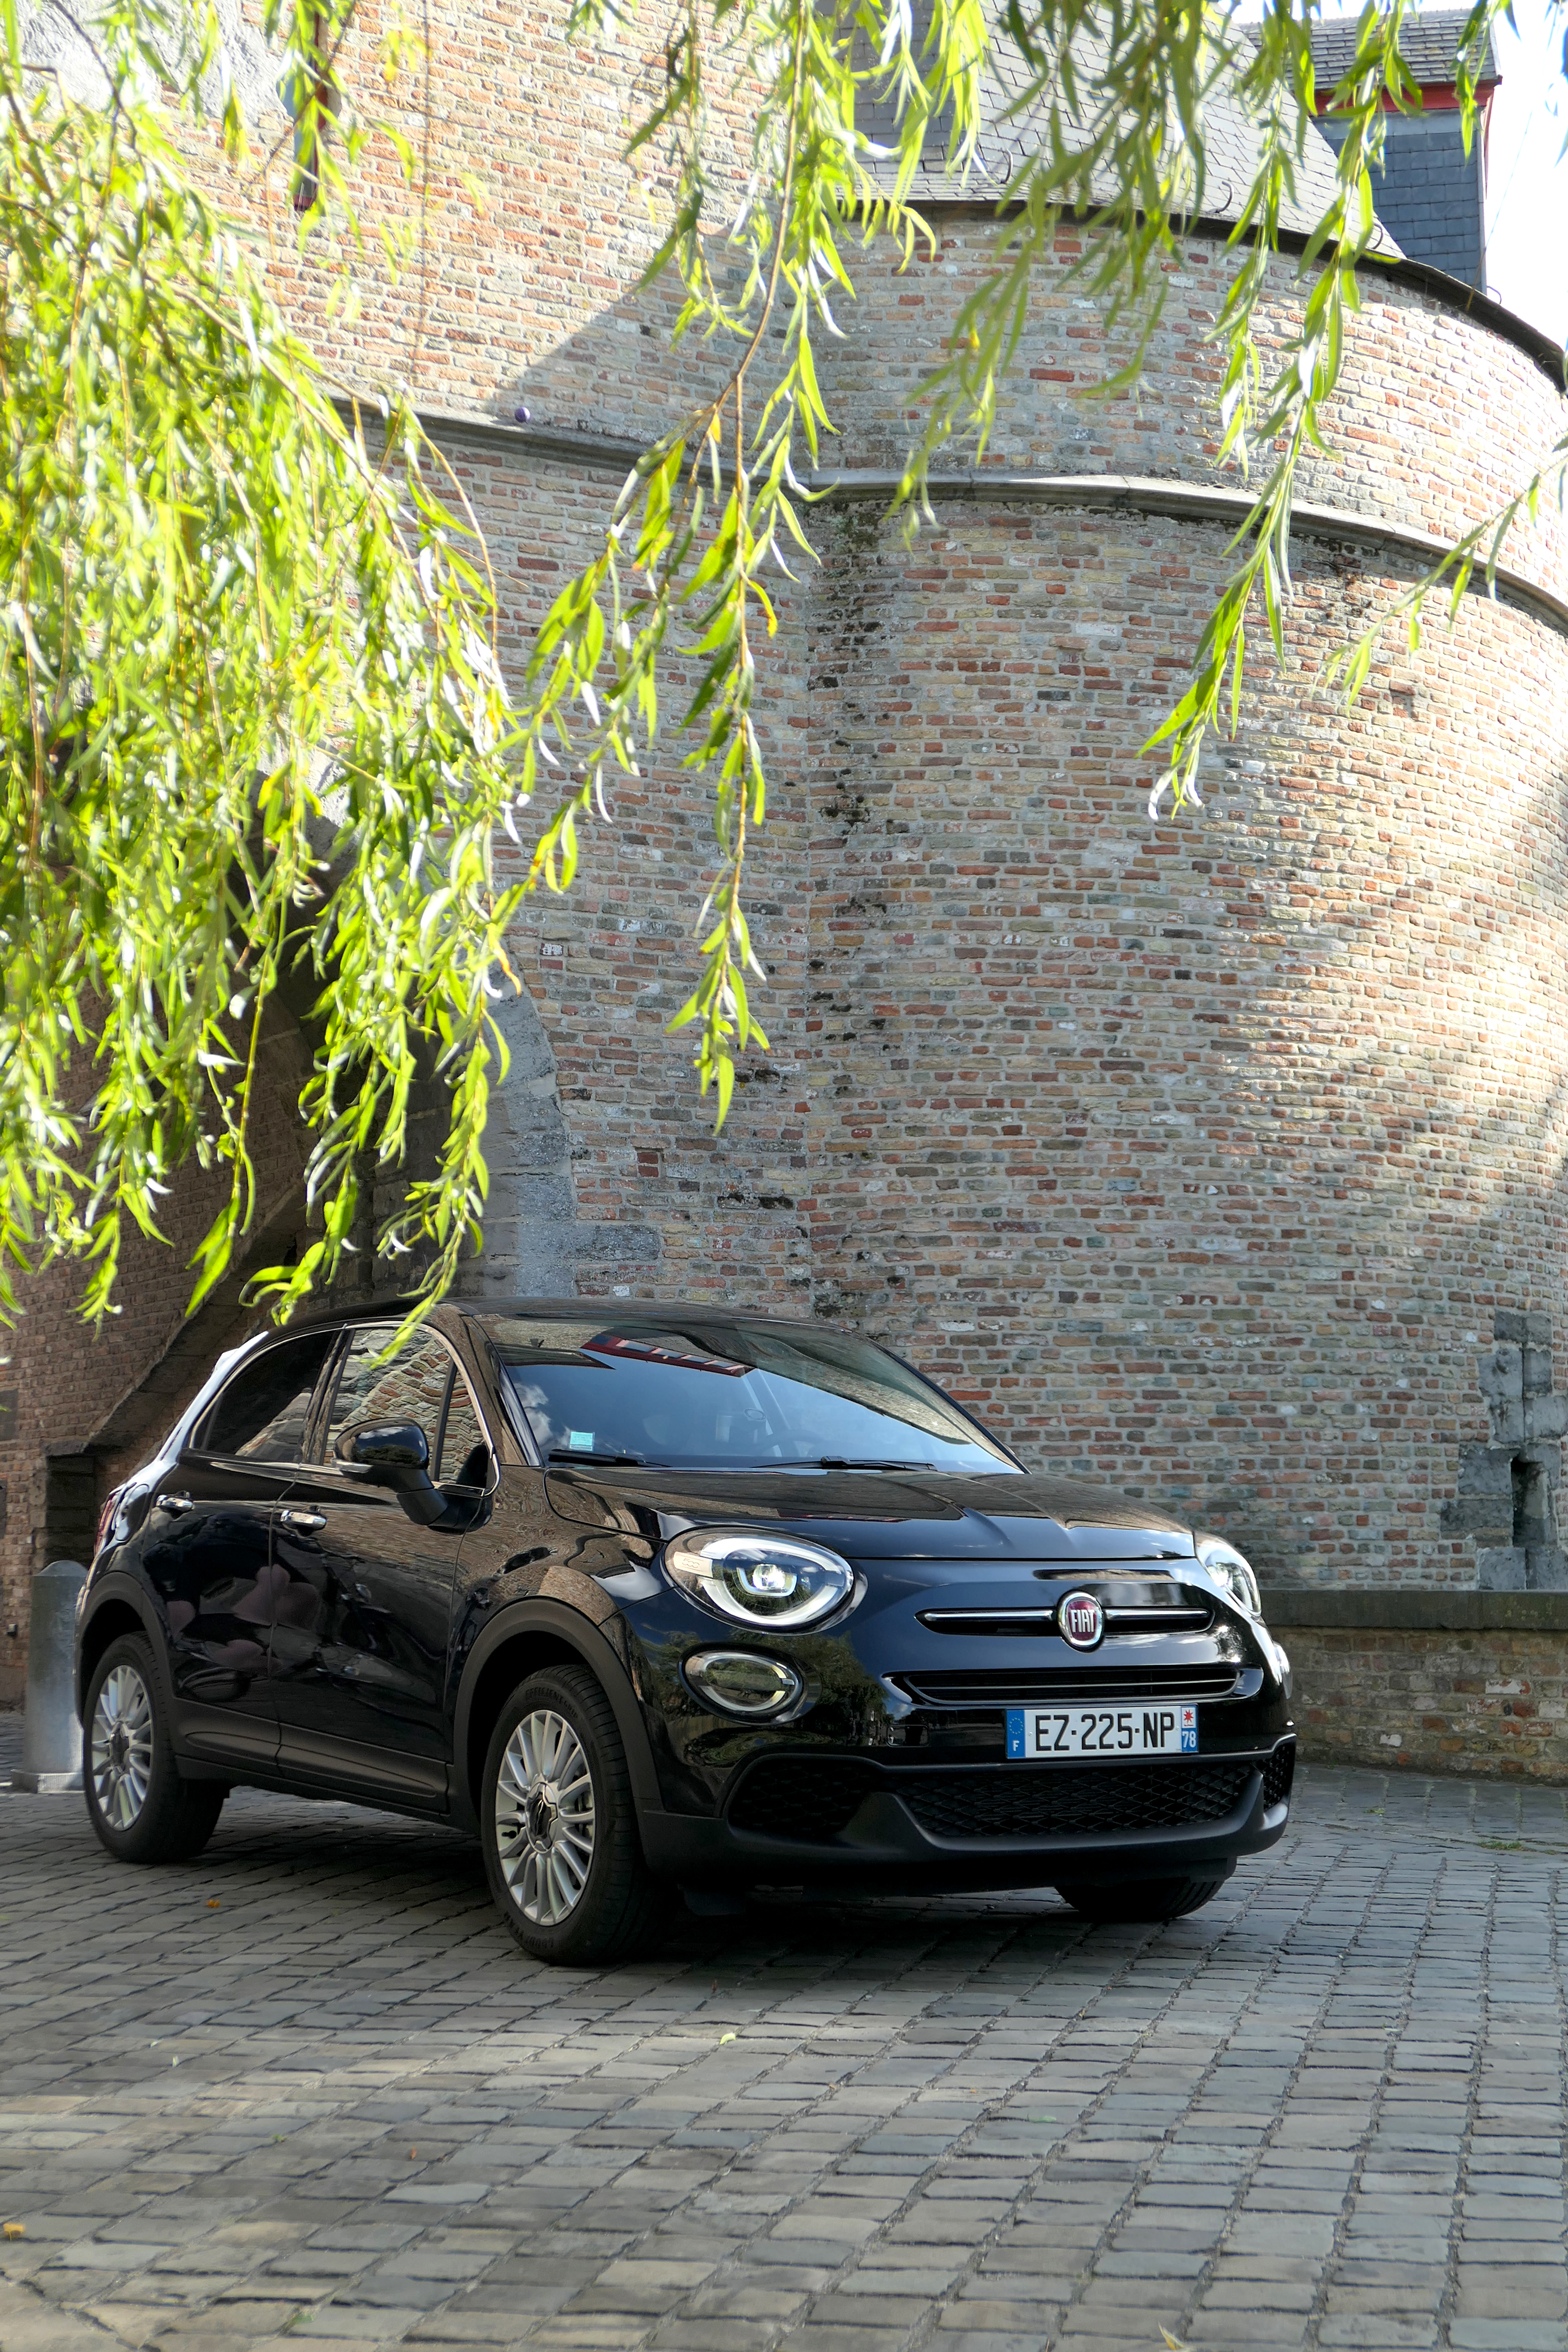 new fiat 500x in the city road rug cars roadrugcars brothers car voiture auto automobile vintage car super car hyper car